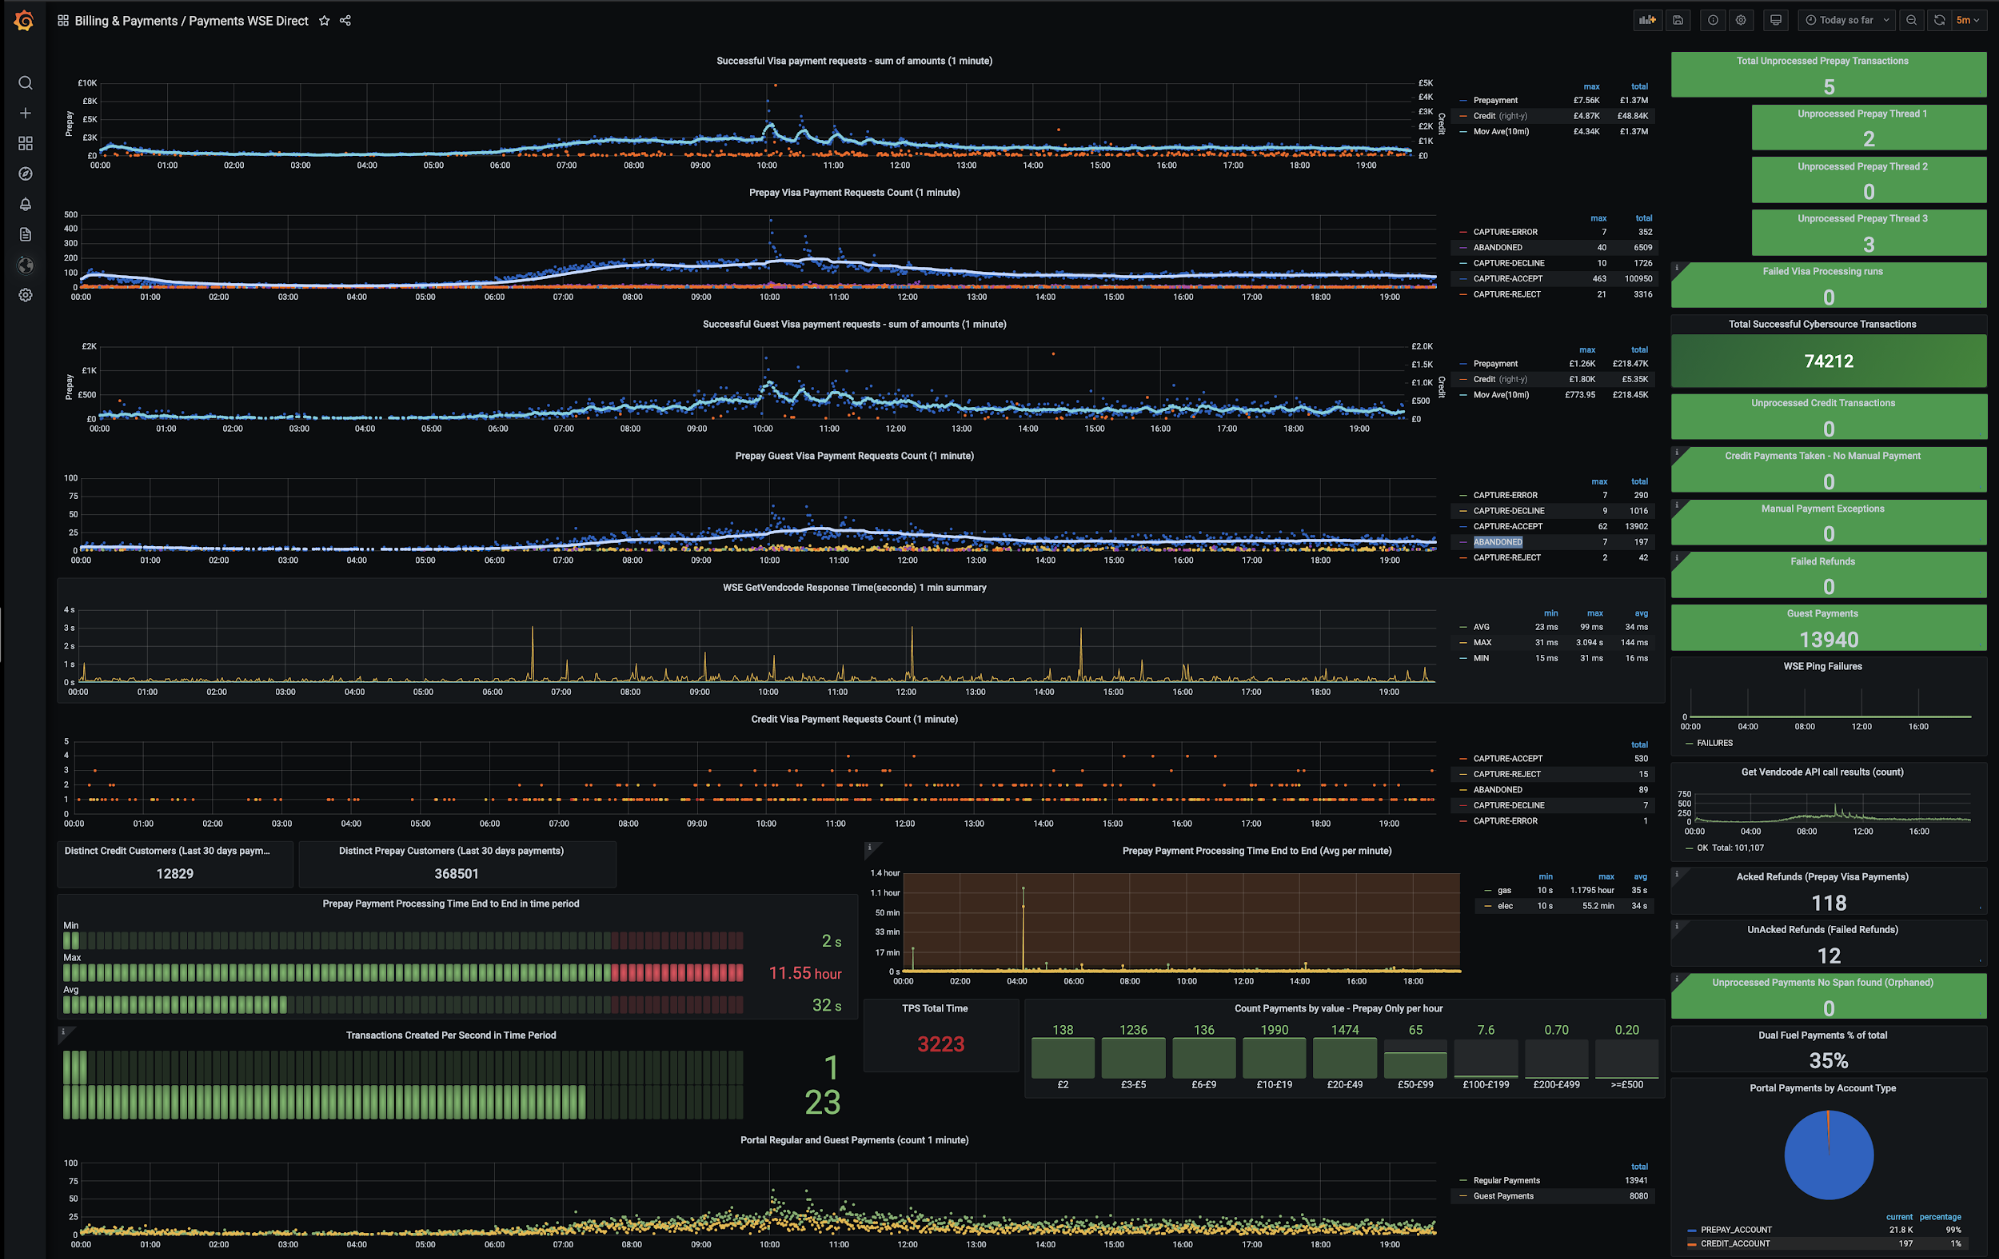 Dashboard showing Utilita's per-minute transaction costs and prepayments.